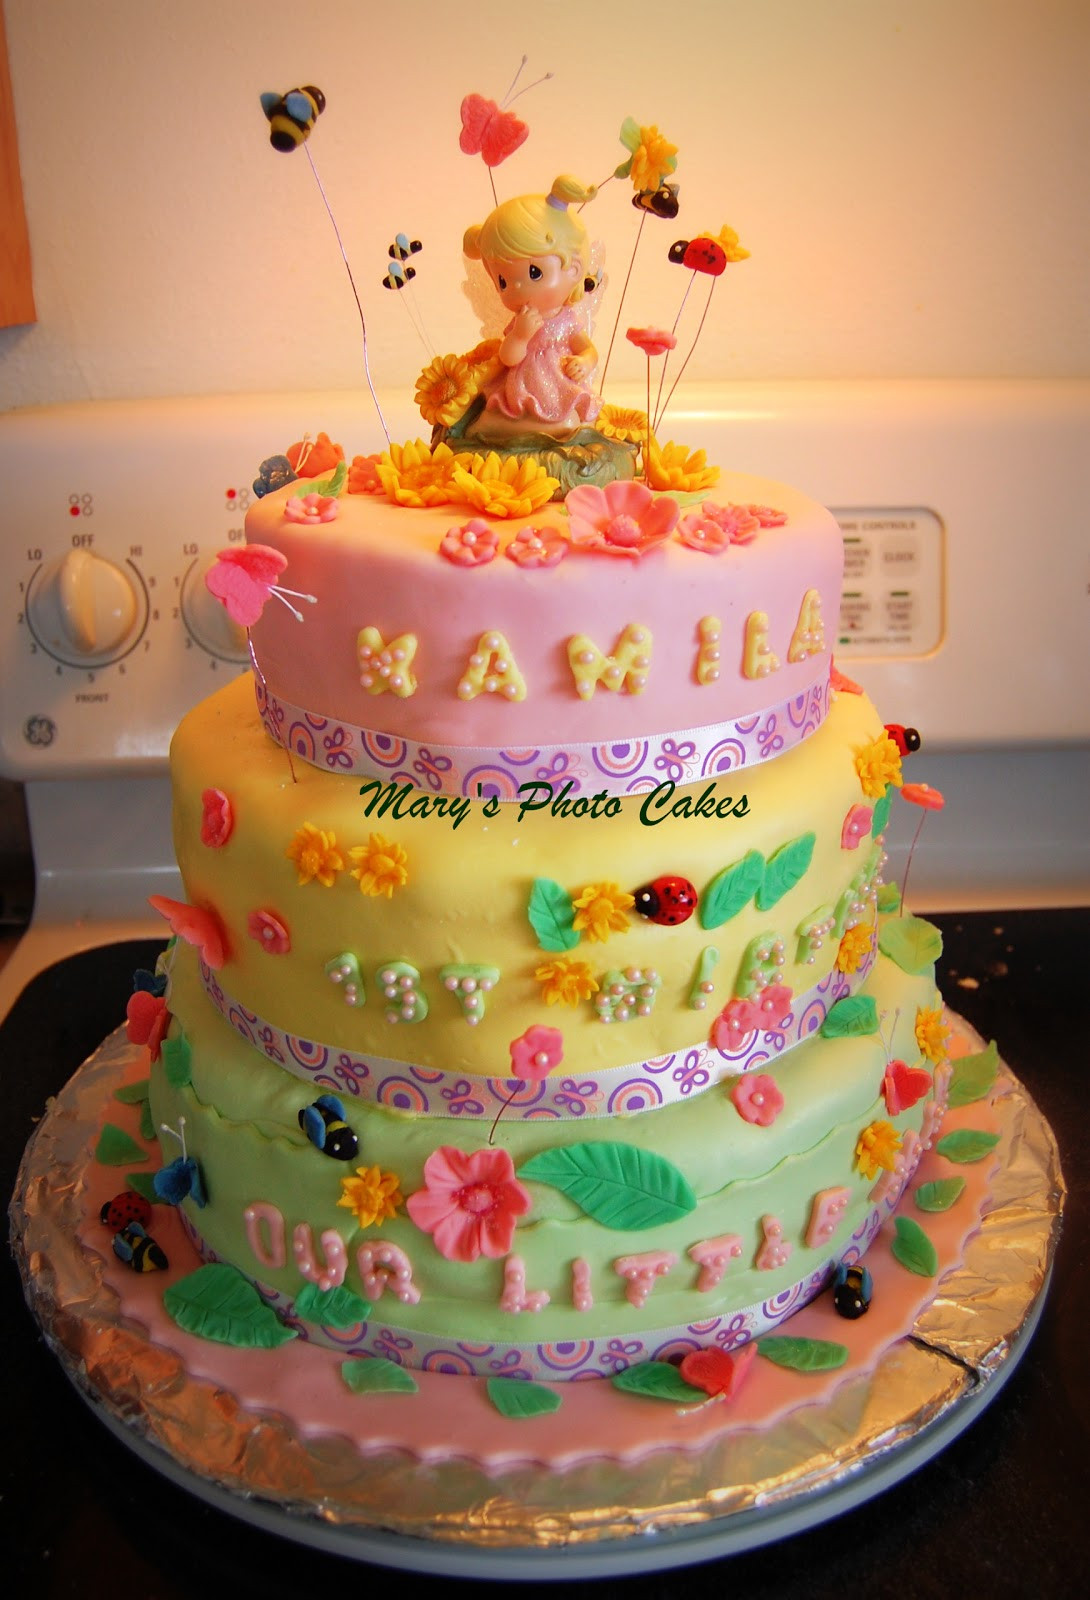 Best ideas about 1 Year Old Birthday Cake . Save or Pin Mary s Cakes Precious Moments Cake for a 1 Year Old Now.